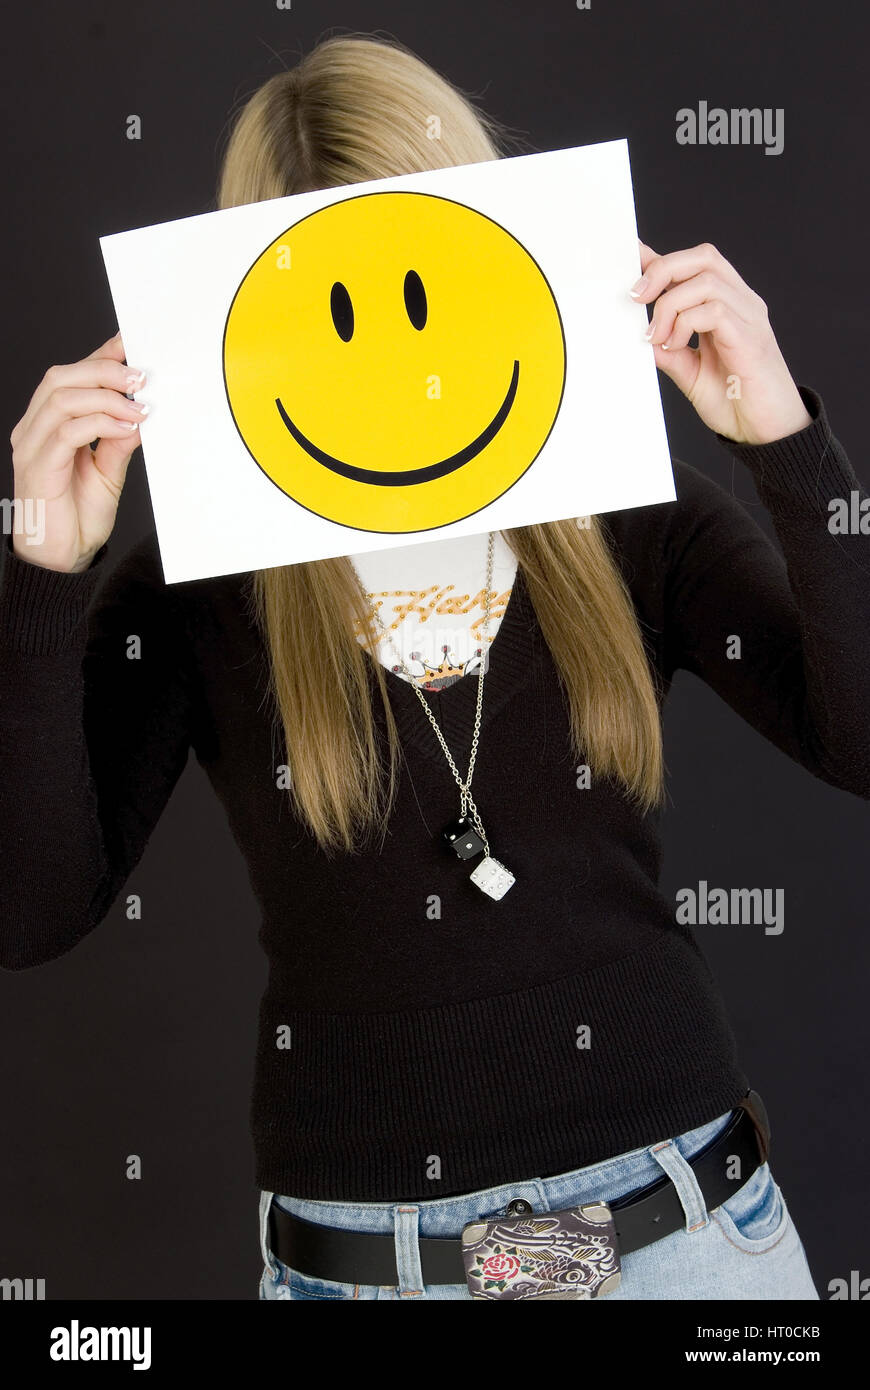 M‰dchen mit lachendem Smileygesicht - girl with laughing smiley face - Stock Image